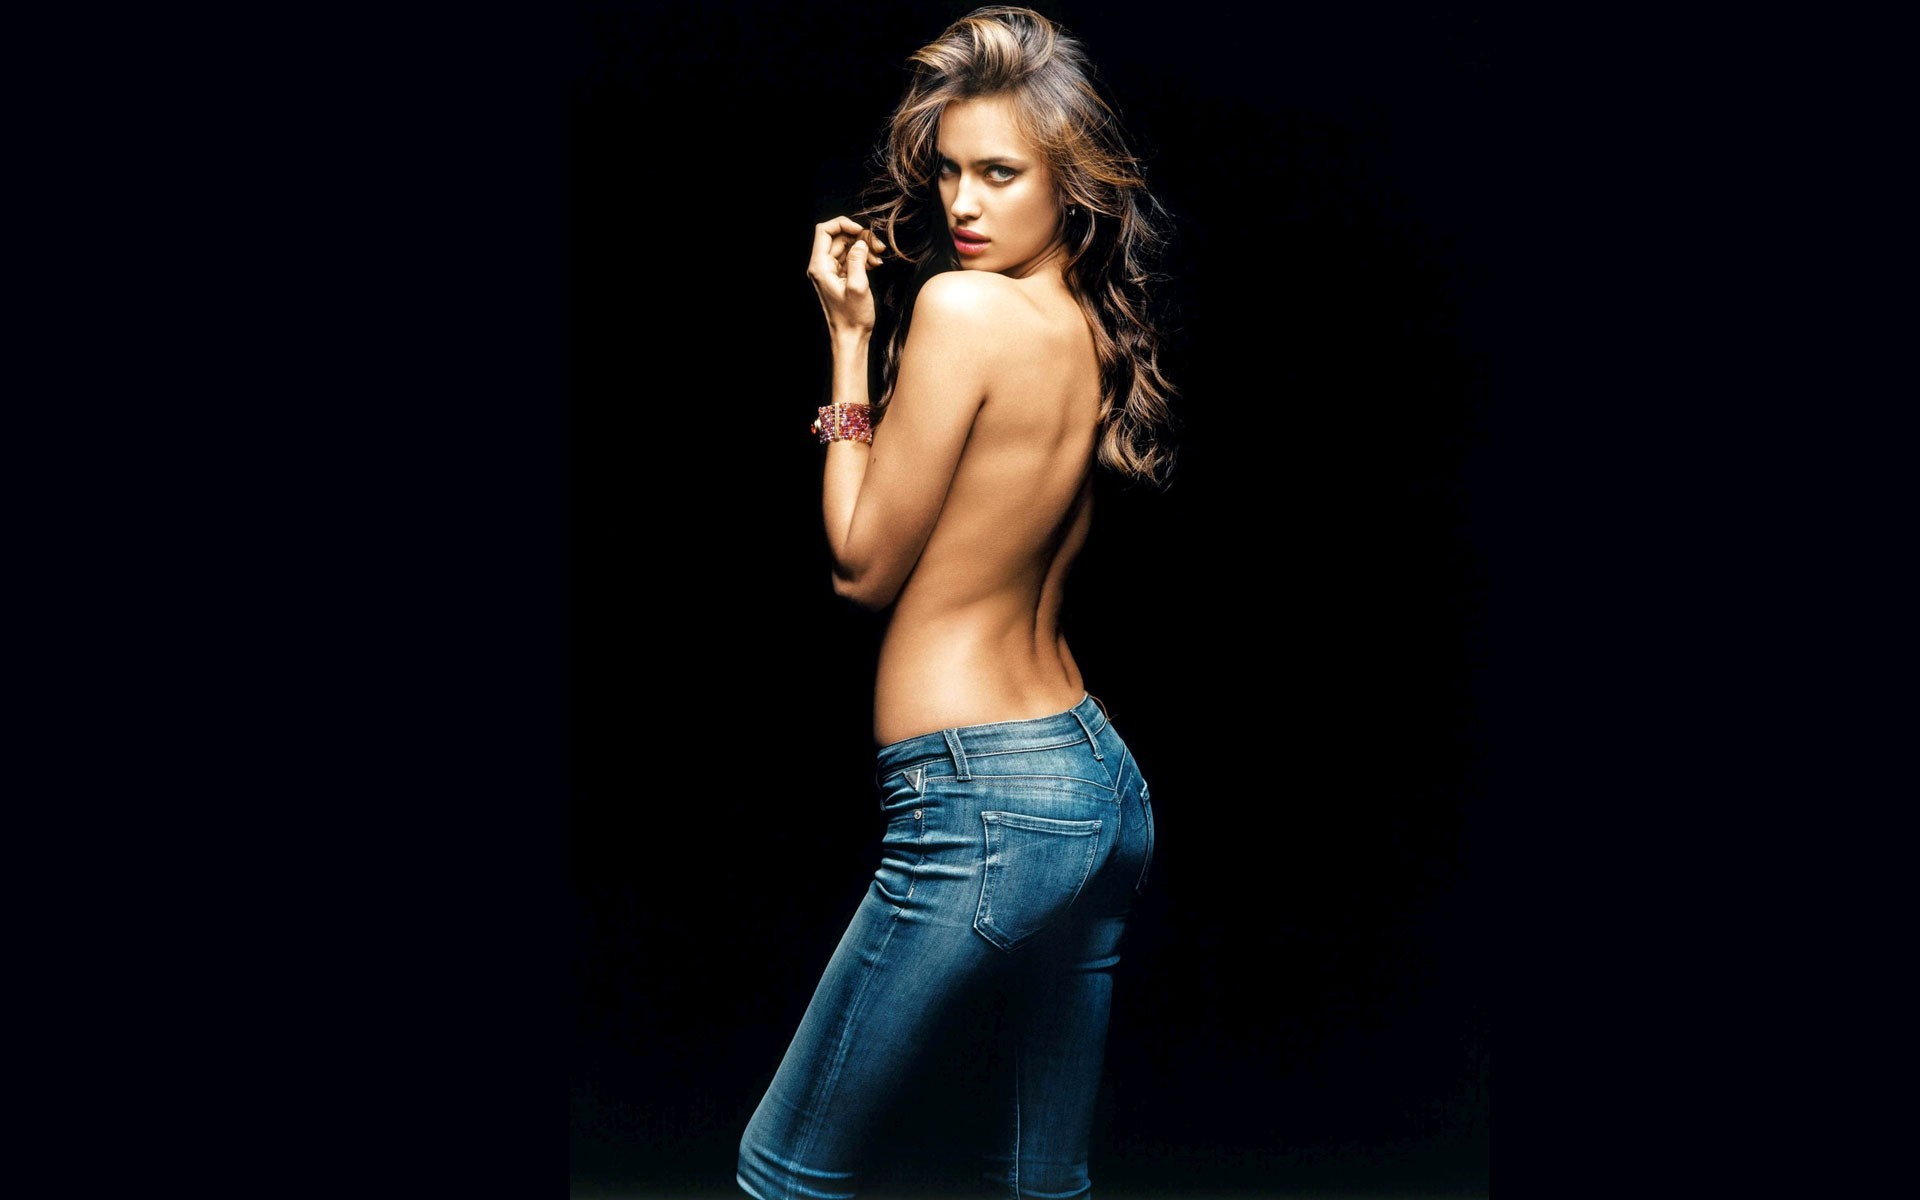 blondes woman jeans irina HD Wallpaper